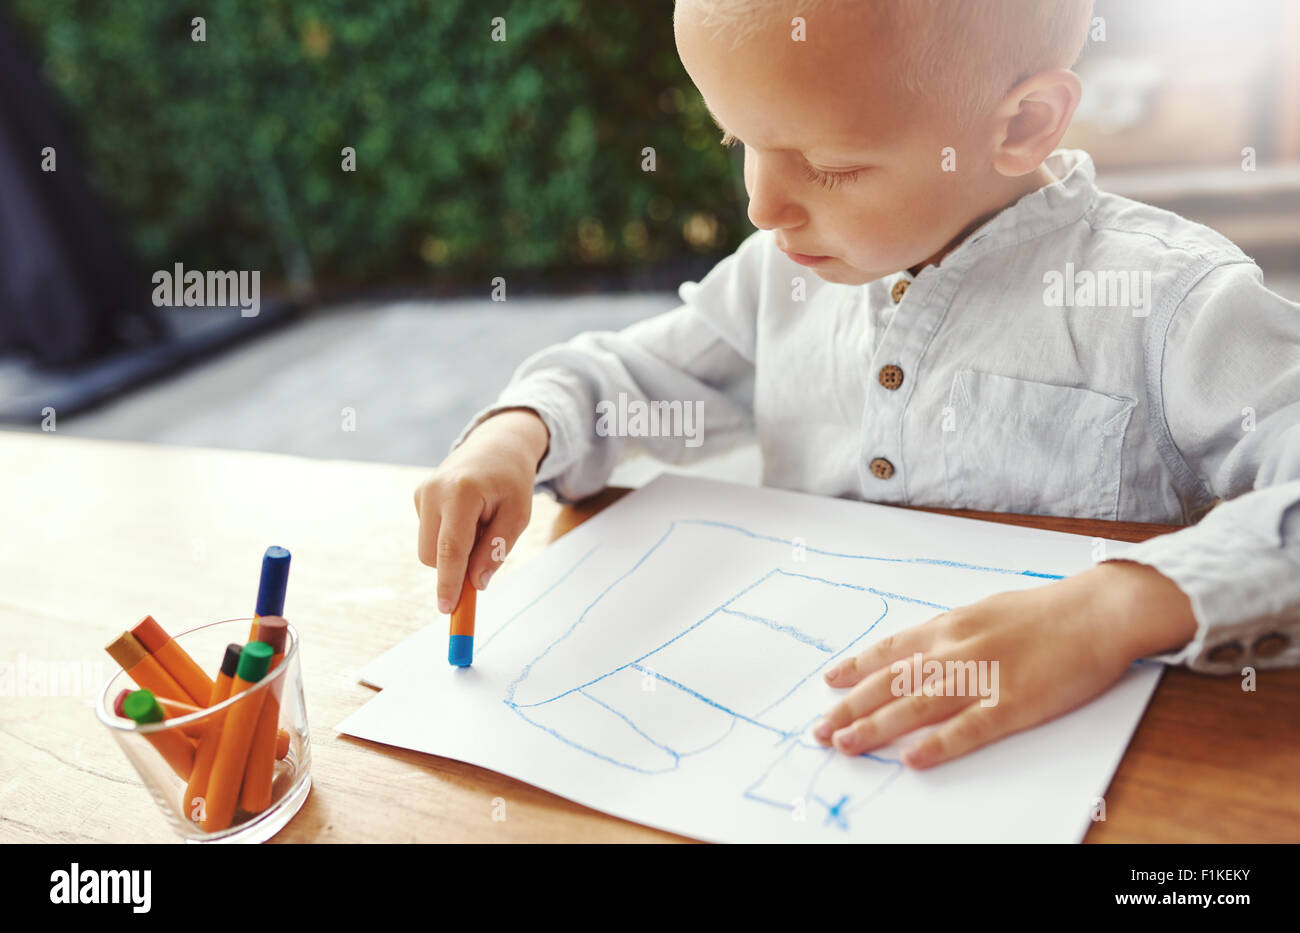 Small boy entertaining himself on a hot summer day standing at a table on an outdoor patio drawing with colored - Stock Image